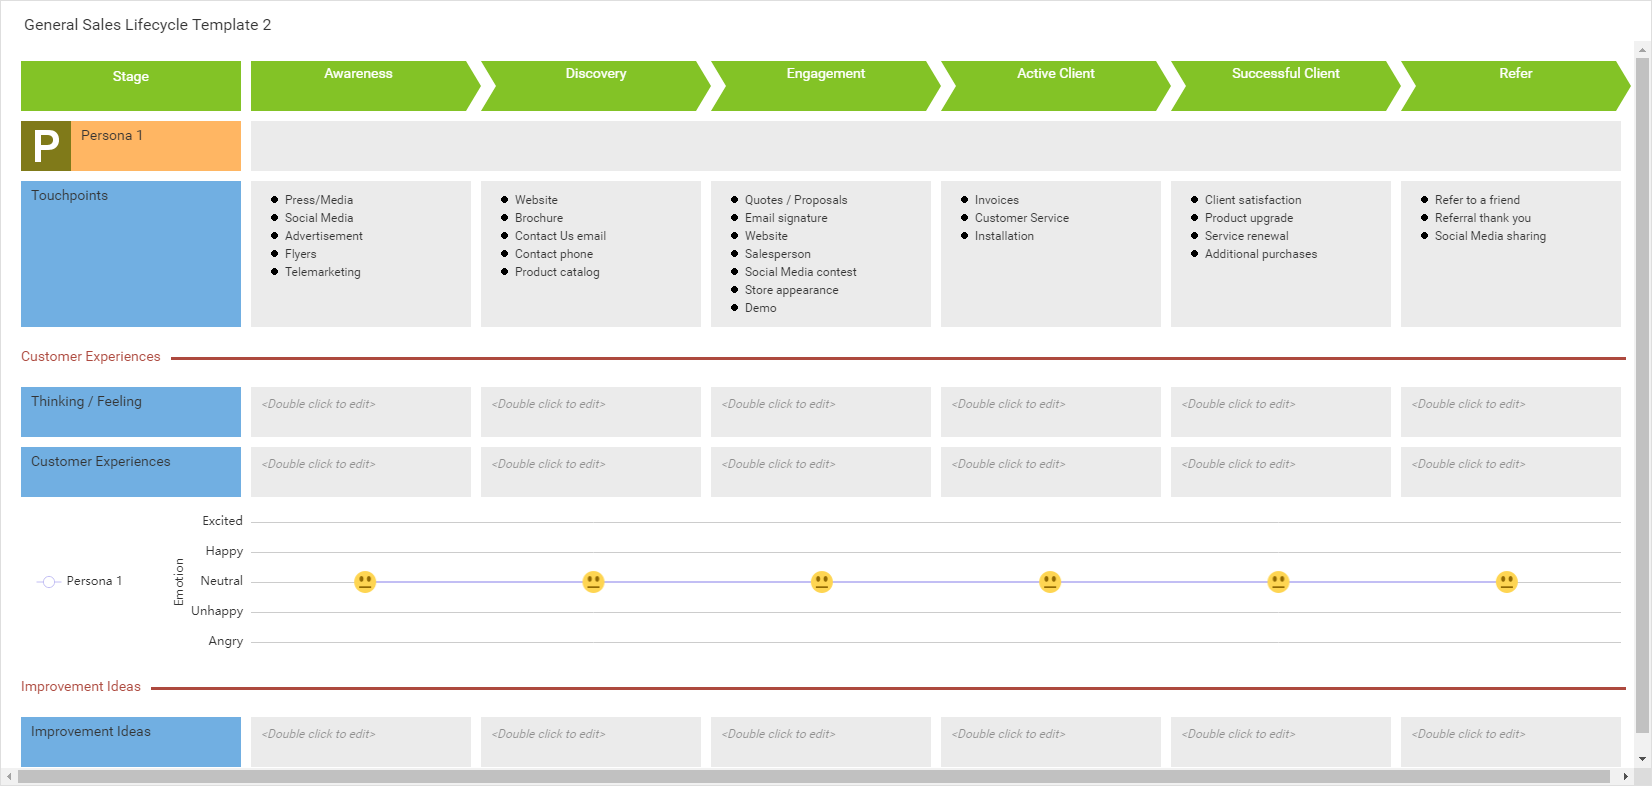 General Sales Lifecycle Template 2 (Customer Journey Mapping Example)